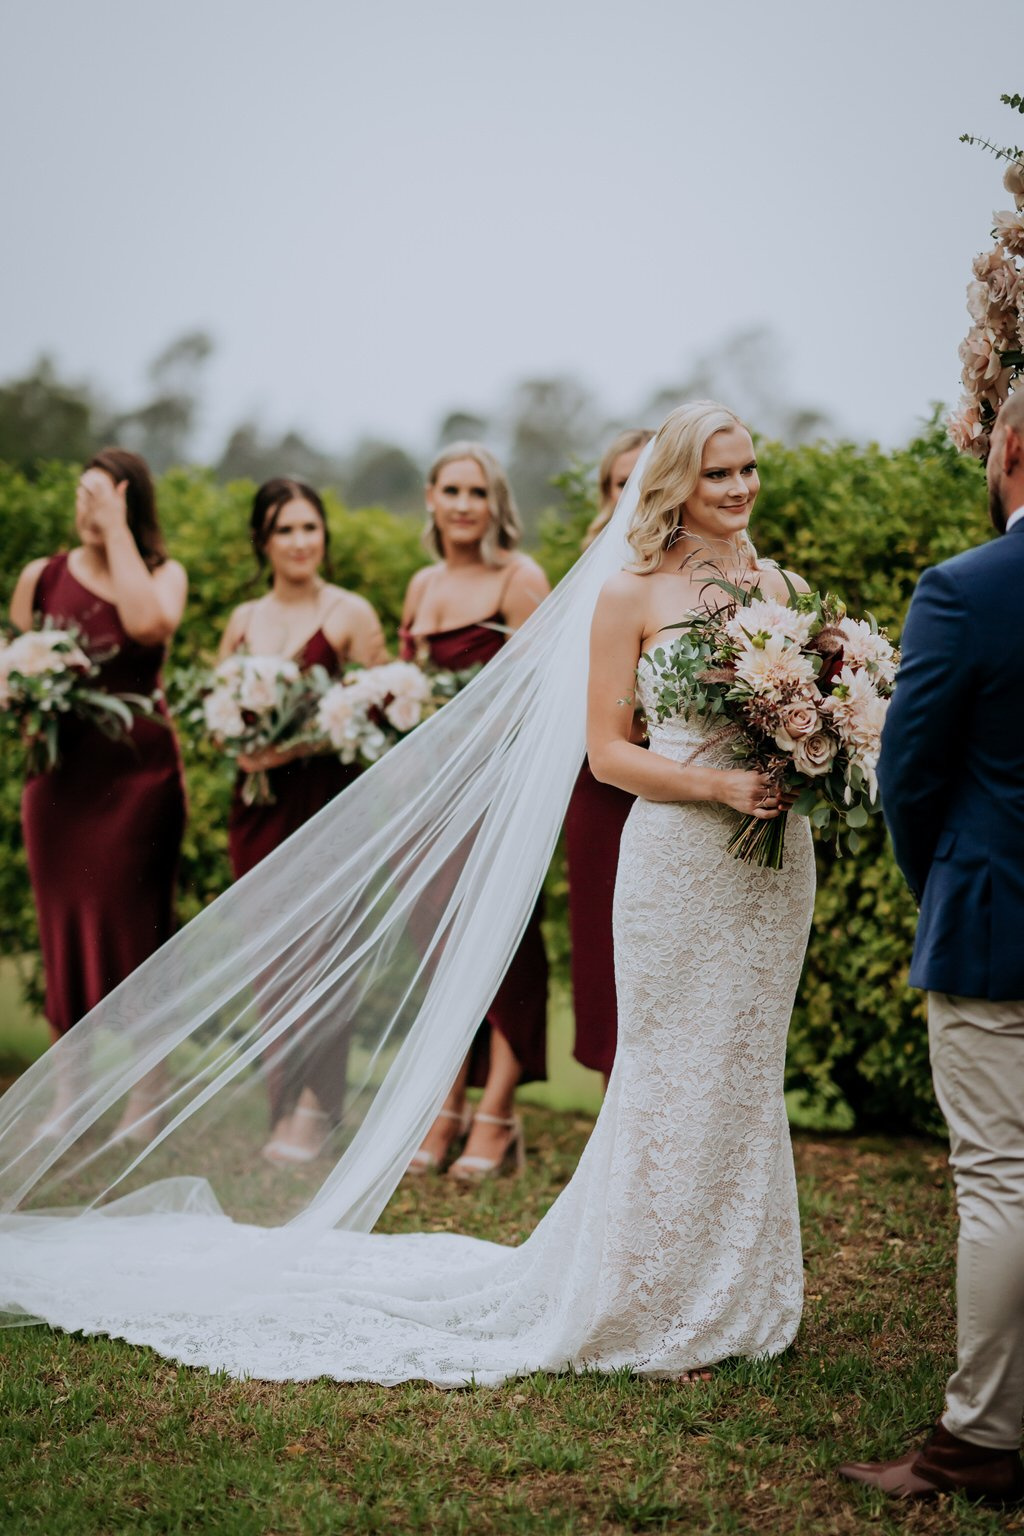 ava-me-photography-jade-simon-loxley-bellbird-hill-kurrajong-heights-wedding-419